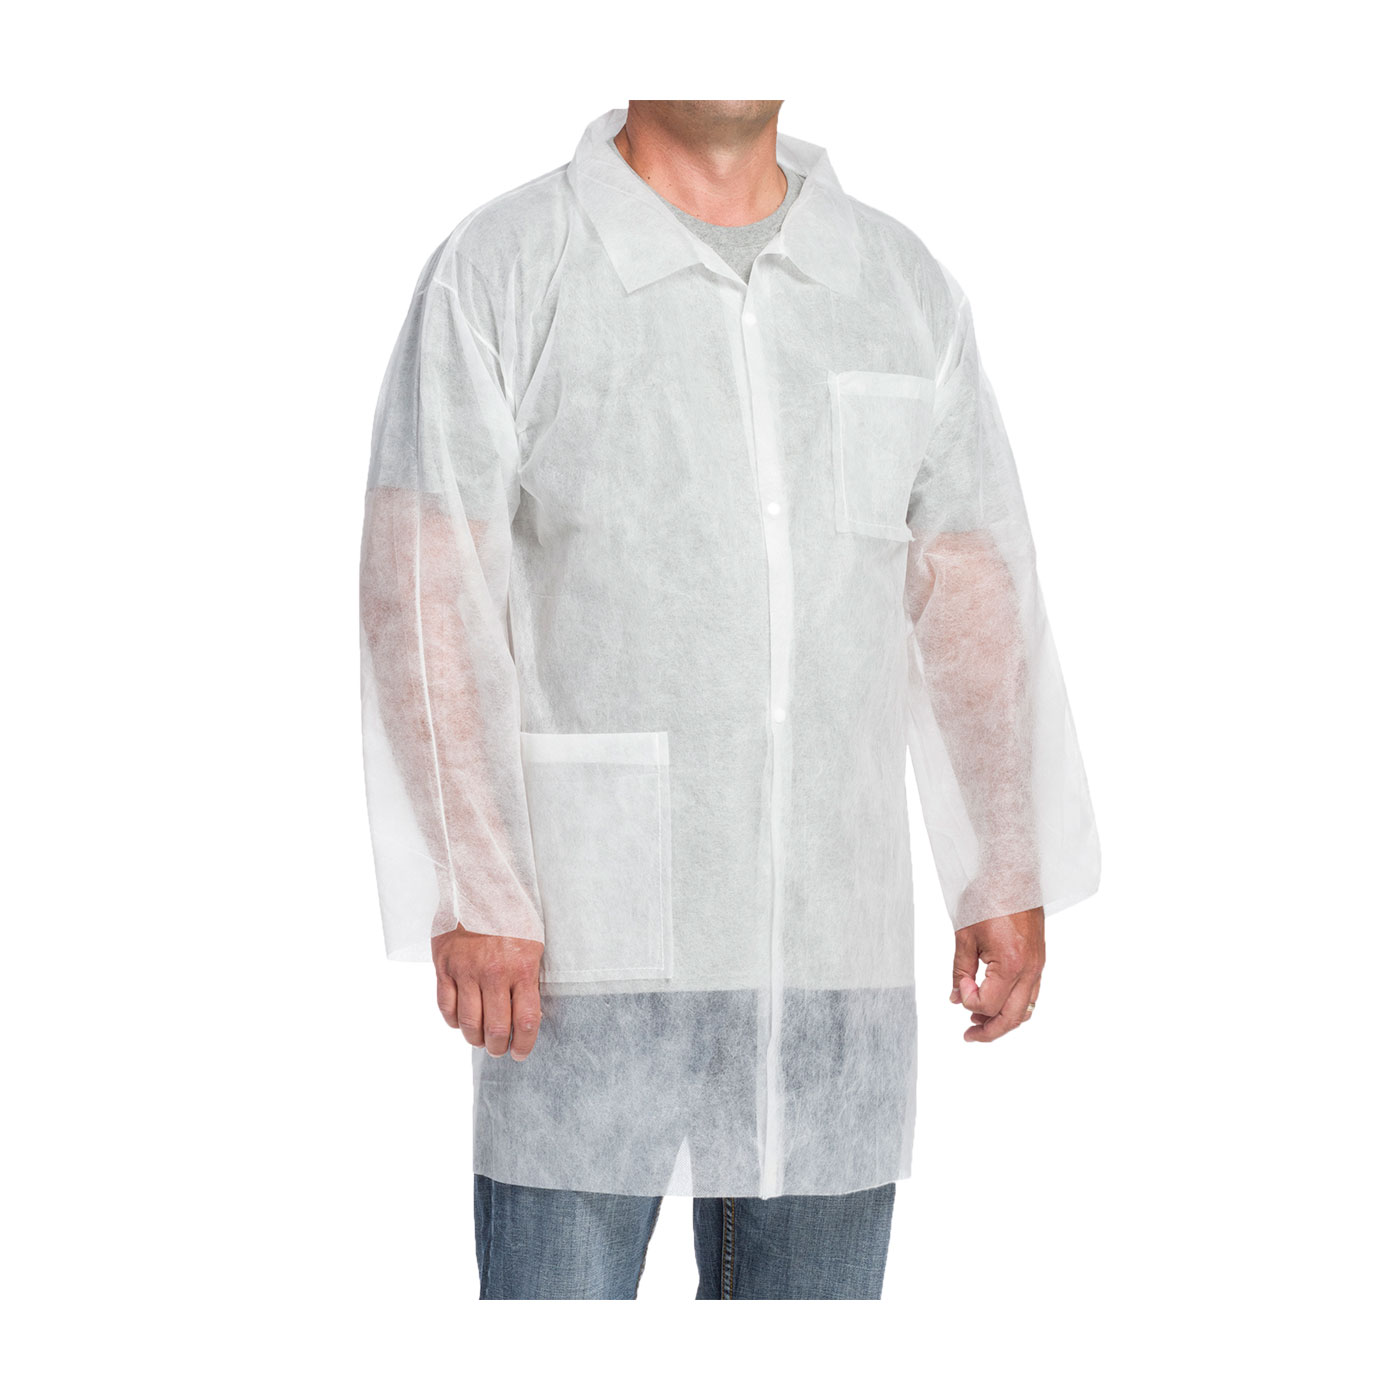 Disposable Polypropylene Lab Coats w/ Two Pockets